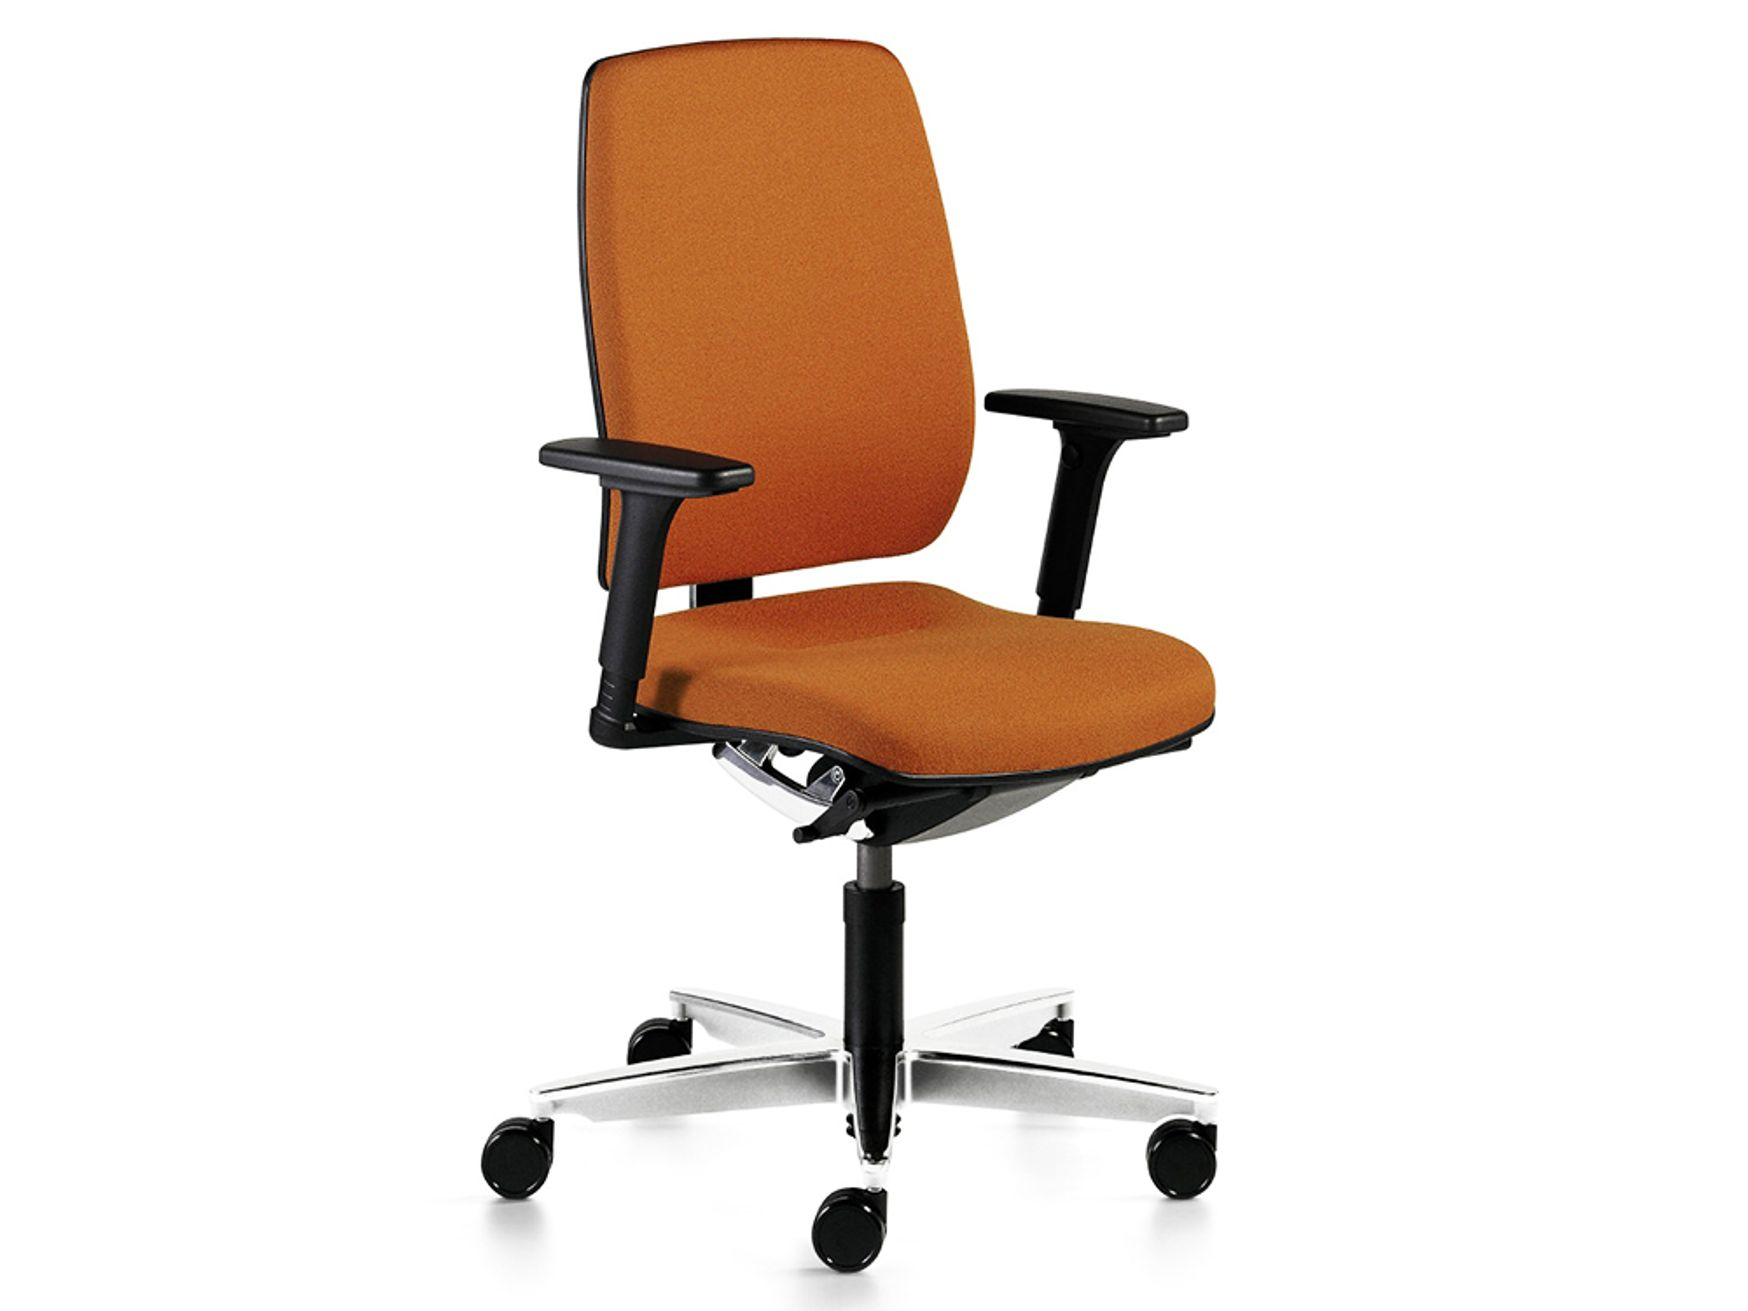 Used Sedus Early Bird Chairs - Choice of Fabric and Free Delivery!